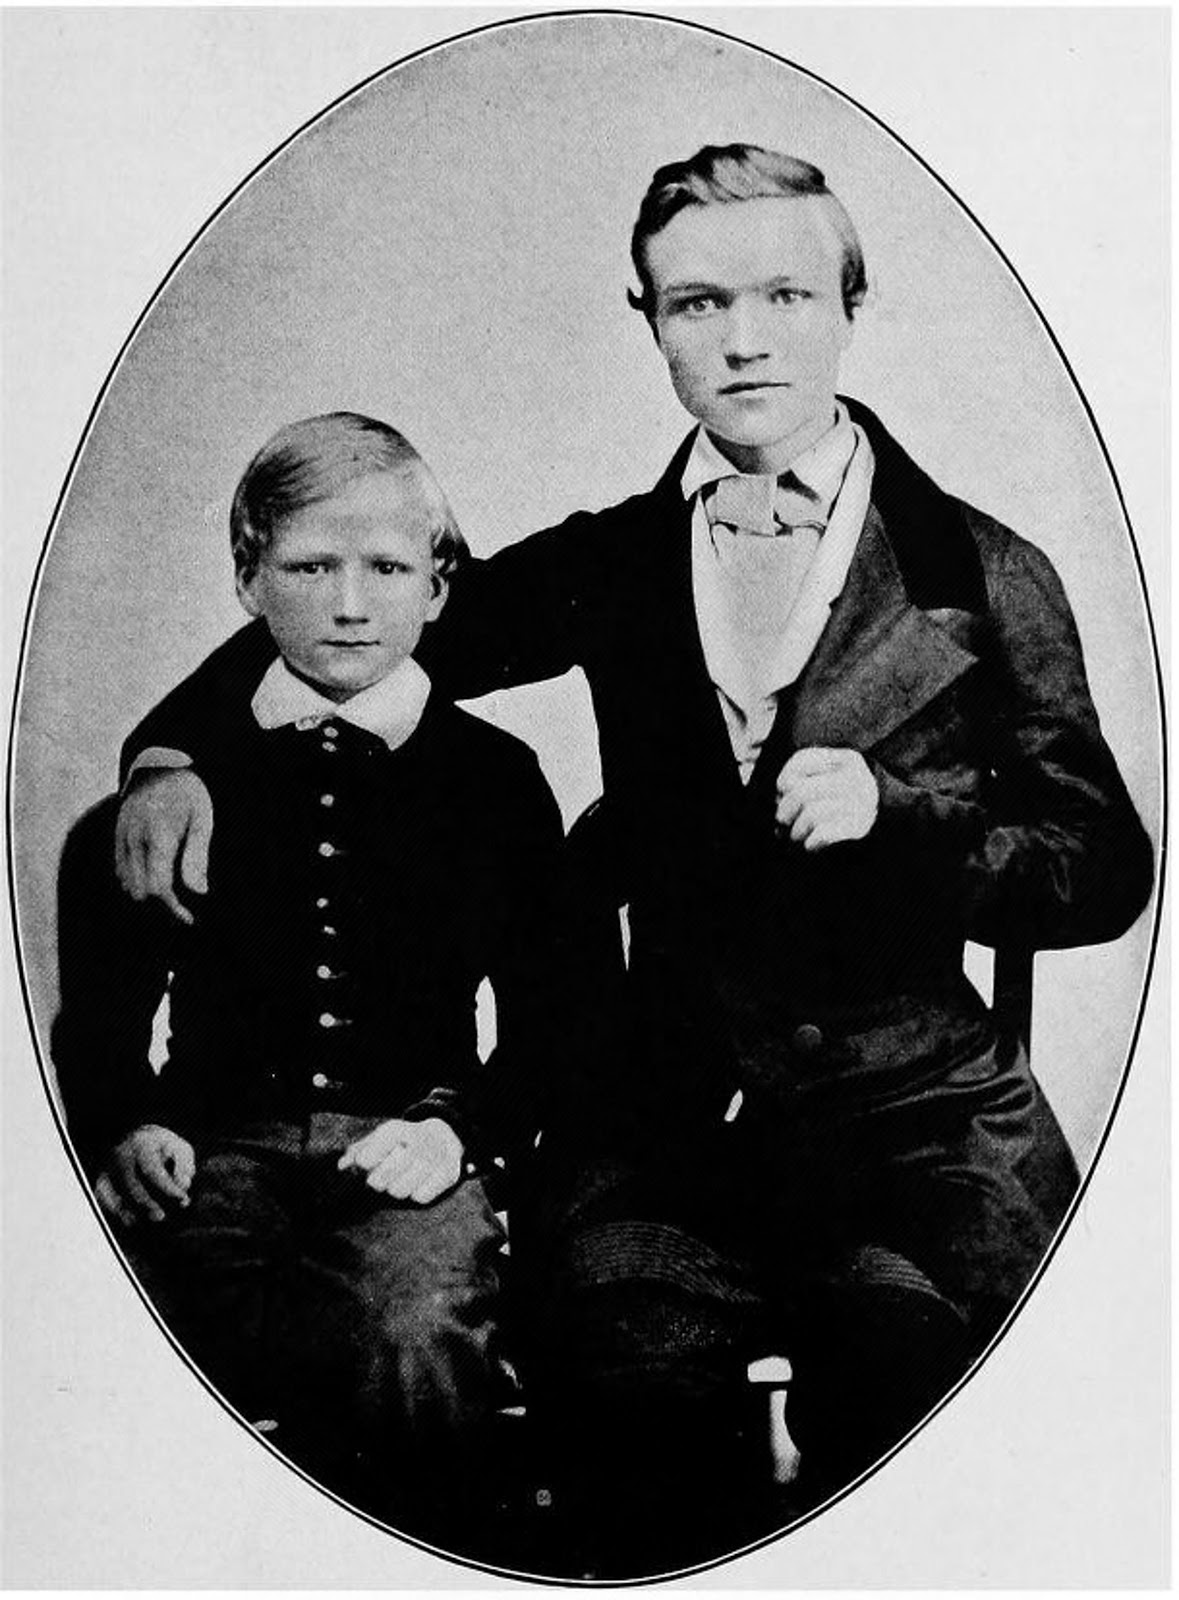 """Andrew Carnegie at age 16 (right), with his brother Thomas. """"Project Gutenberg eText 17976"""". Licensed under Public Domain via Wikimedia Commons."""